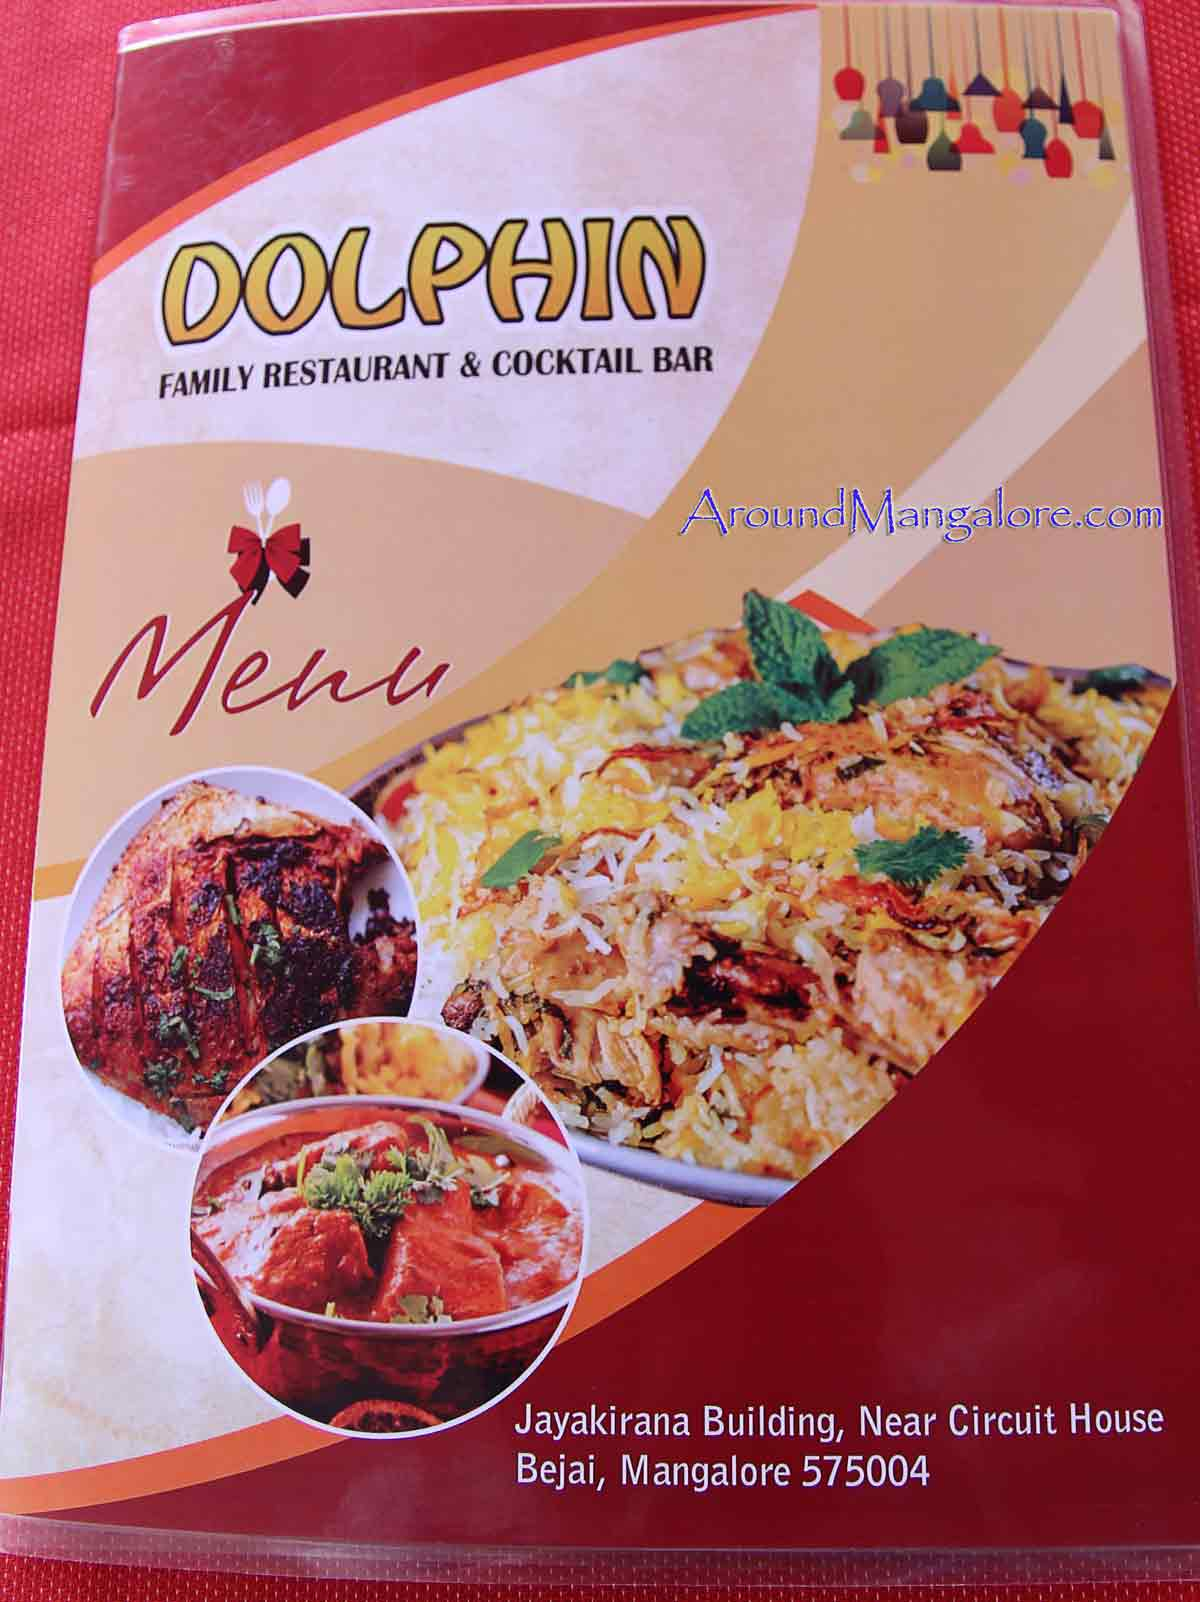 Food Menu - Dolphin Restaurant & Cocktail Bar, Bejai